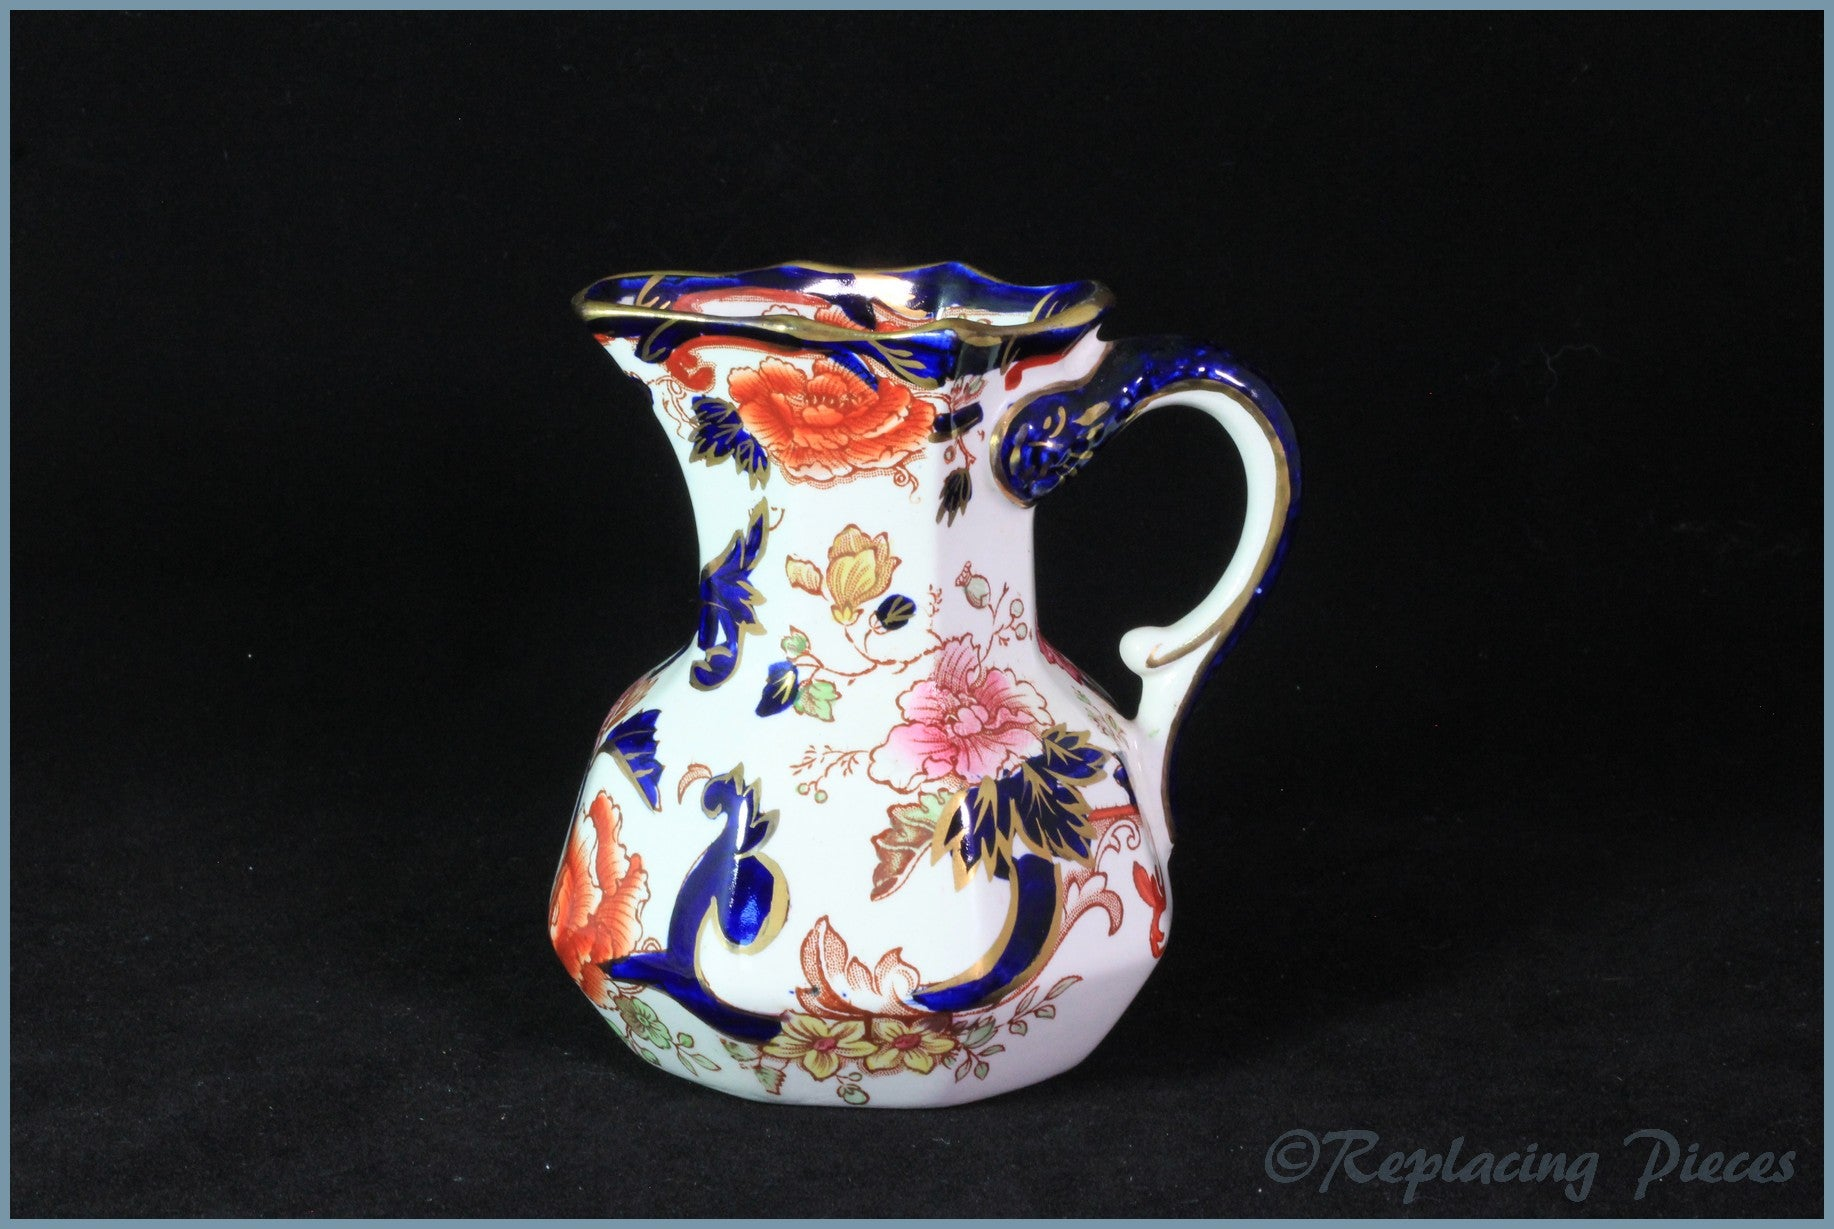 Masons - Mandalay Blue - Hydra Jug (small)